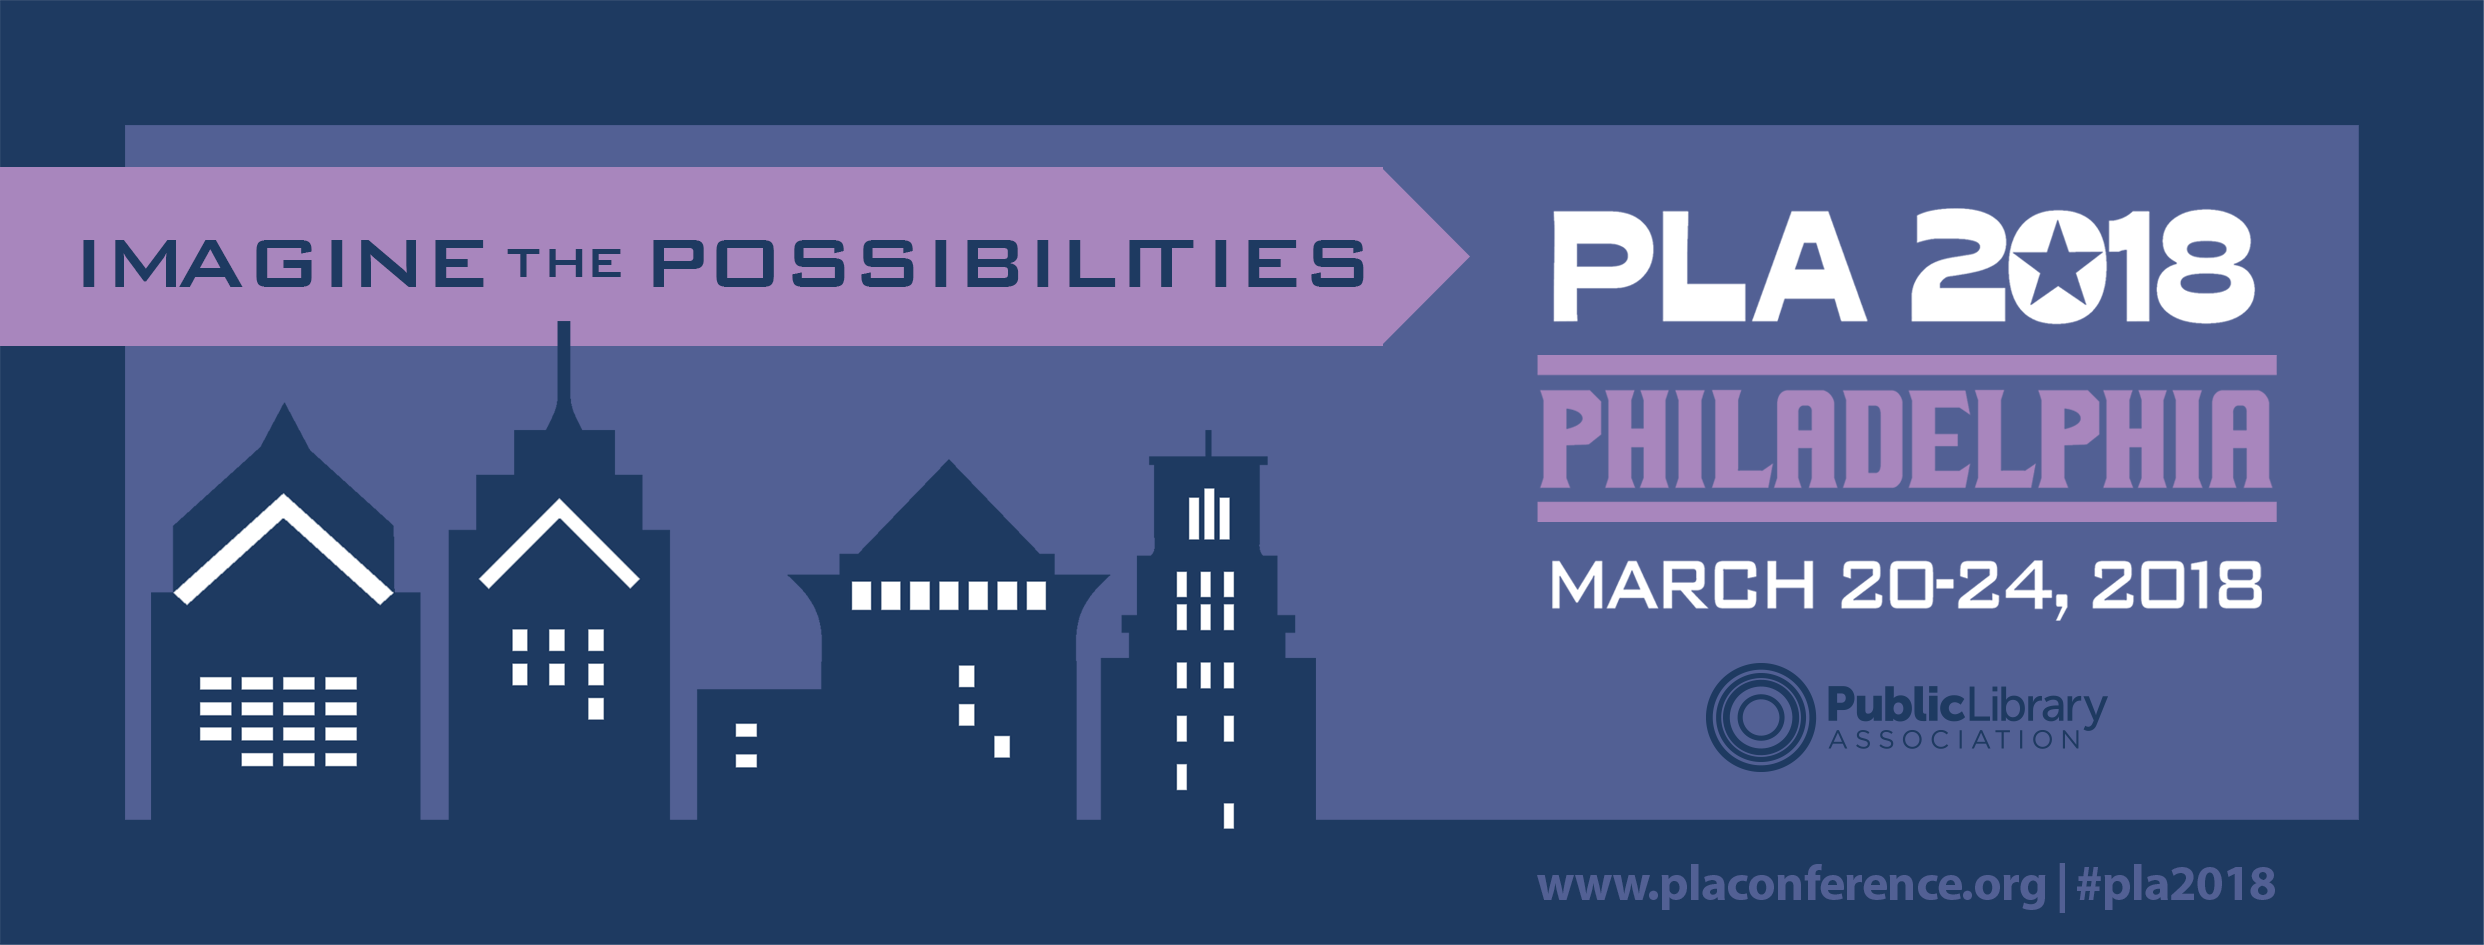 PLA 2018 Imagine the Possibilities Facebook Cover